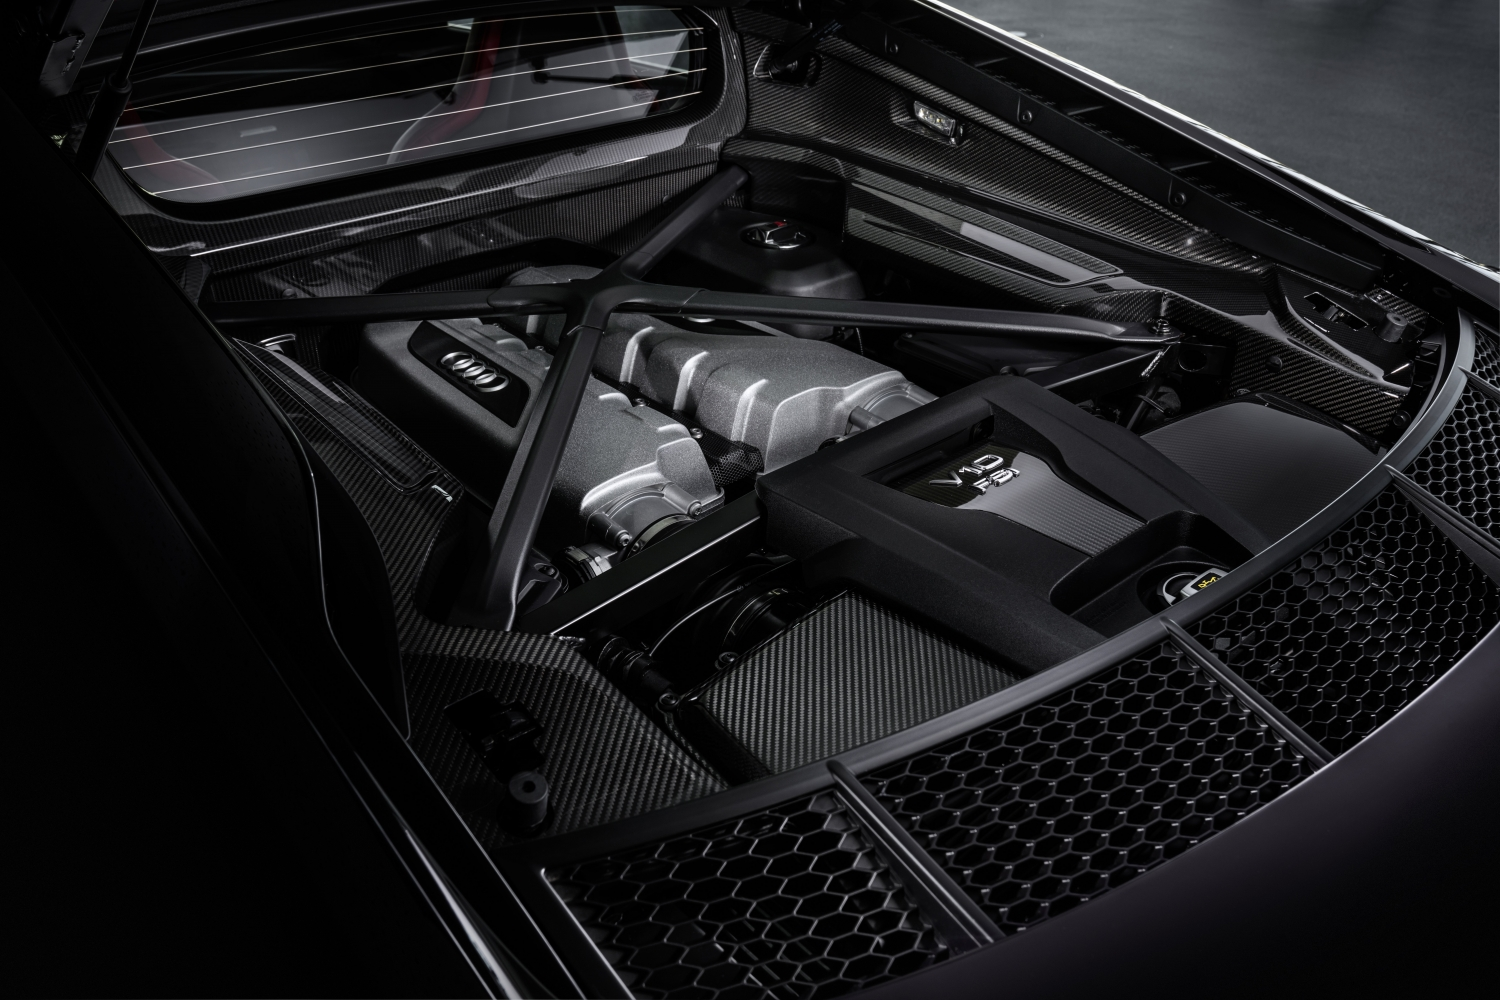 2021 Audi R8 Panther Edition engine bay